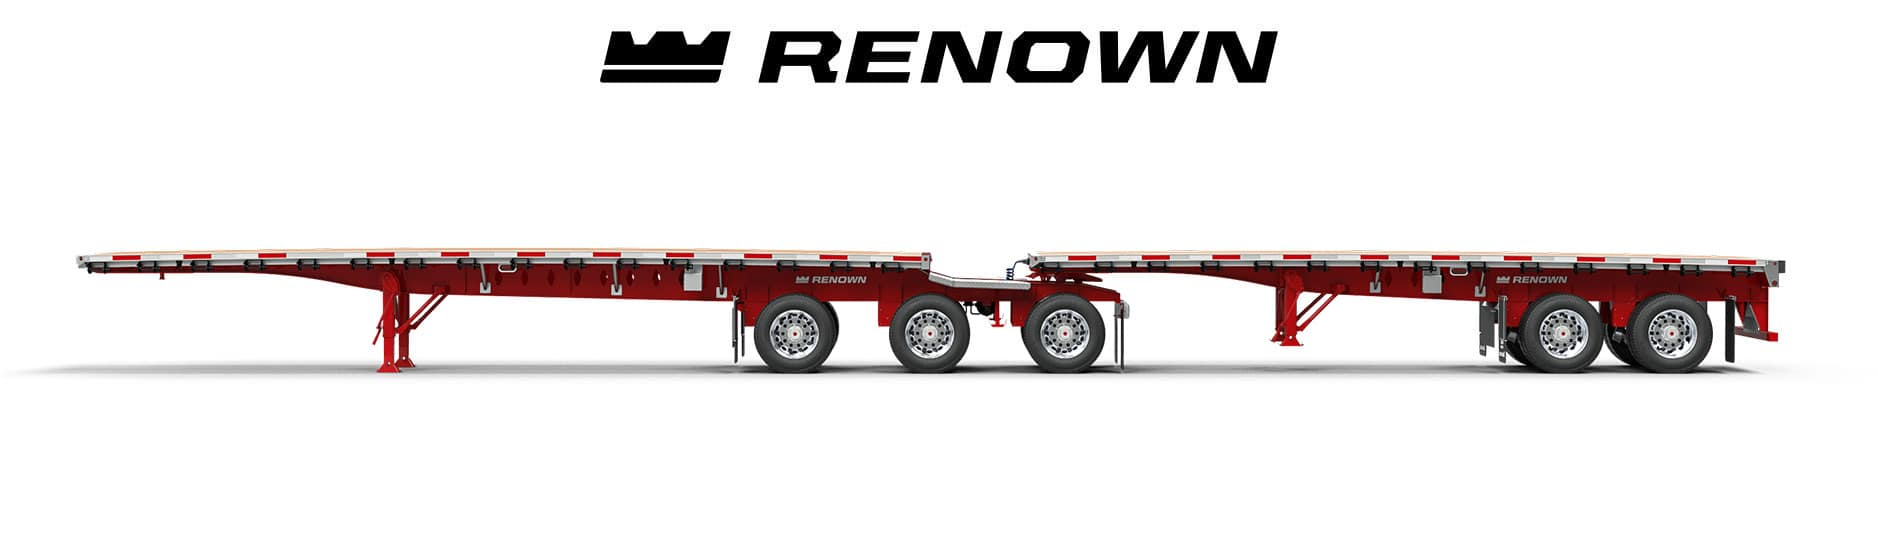 Forceline Steel Flatbed Trailers Specifications Lode King Used Gooseneck Wiring Harness On Boxes Combo